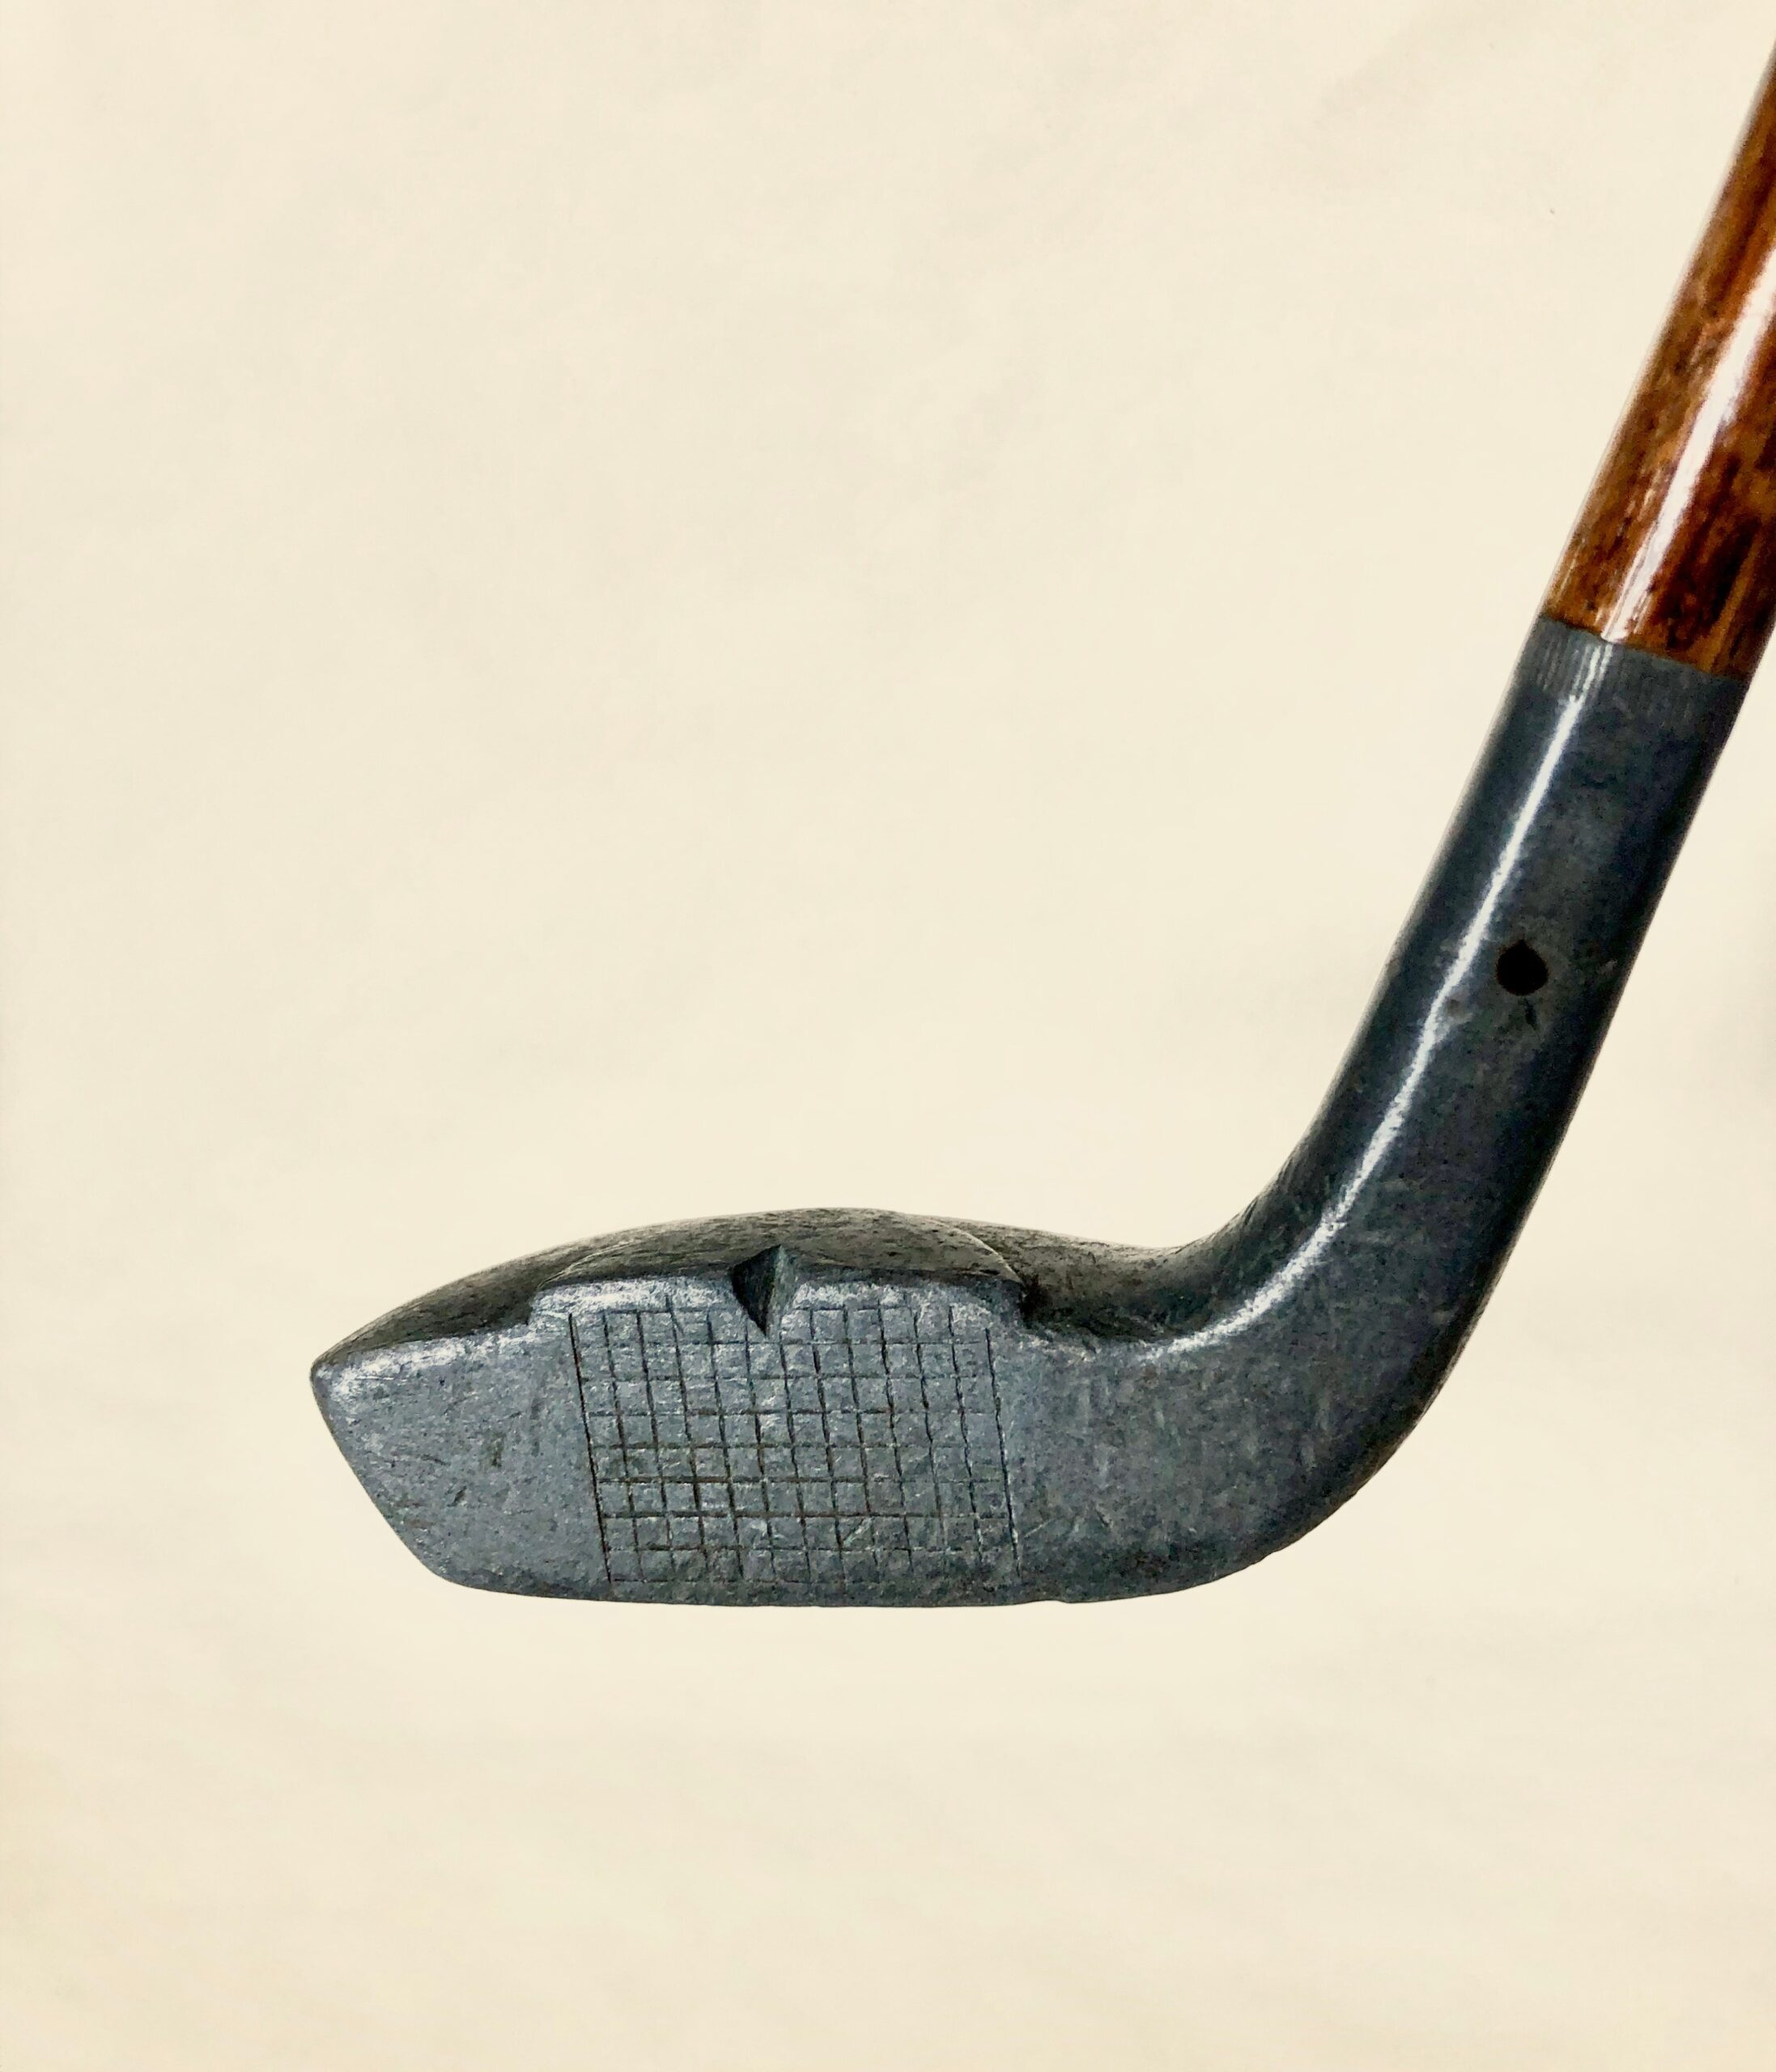 Rodwell Patent Aluminium mallet-style Putter